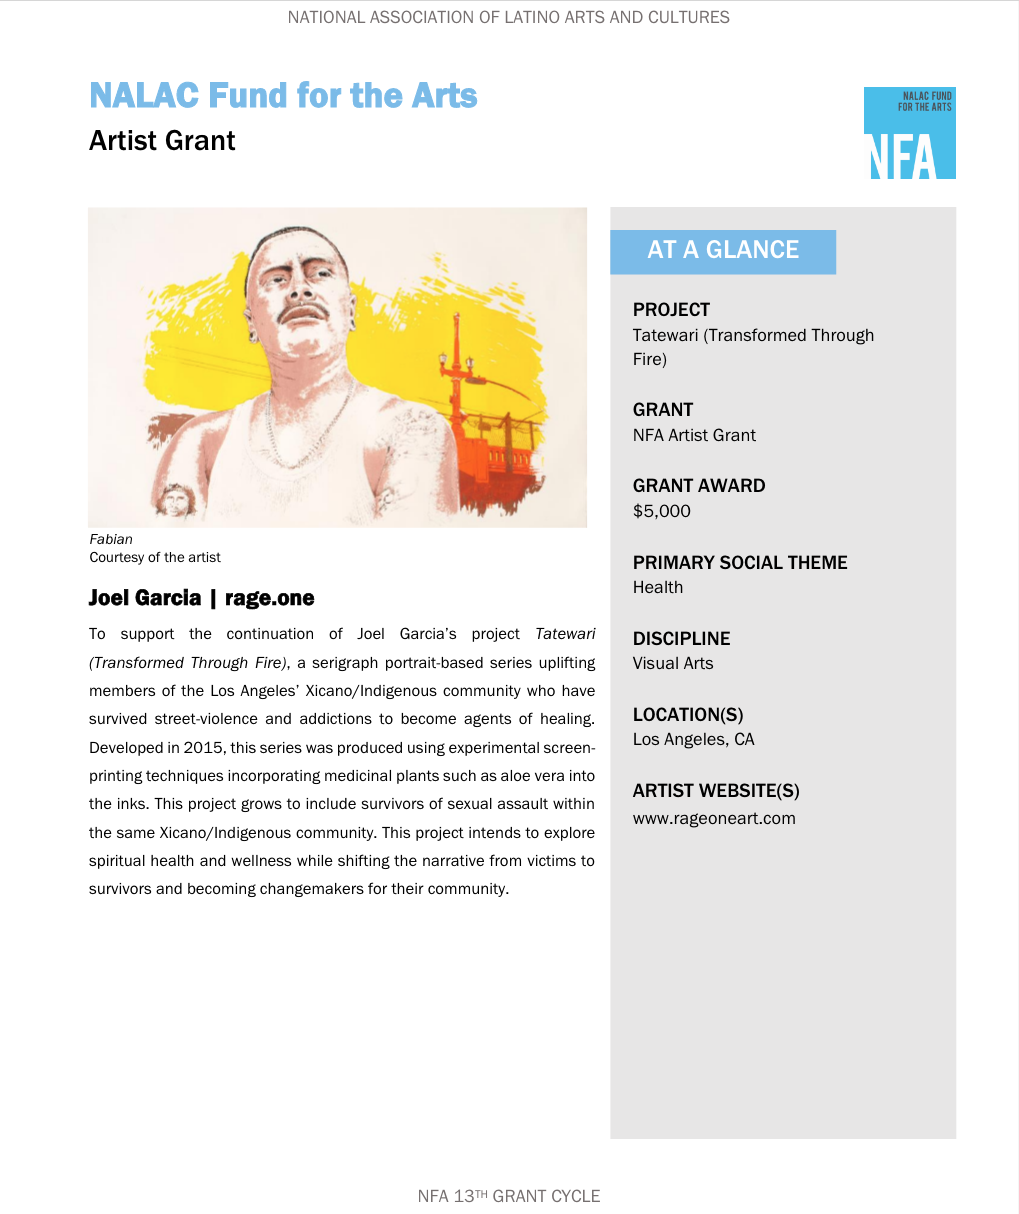 "Joel Garcia (Los Angeles, CA) is an artist, arts administrator and cultural organizer with 20+ years of experience working transnationally across the Americas. Joel is one of the recipients of the NFA Artist Grant which will support the continuation of ""Tatewari (Transformed Through Fire)"", a serigraph portrait-based series uplifting members of Los Angeles' Xicano/Indigenous community who have survived street-violence and addictions to become agents of healing.   Learn More:  www.nalac.org/communications/newsroom/2602-43-grants-latino-artists-organizations"